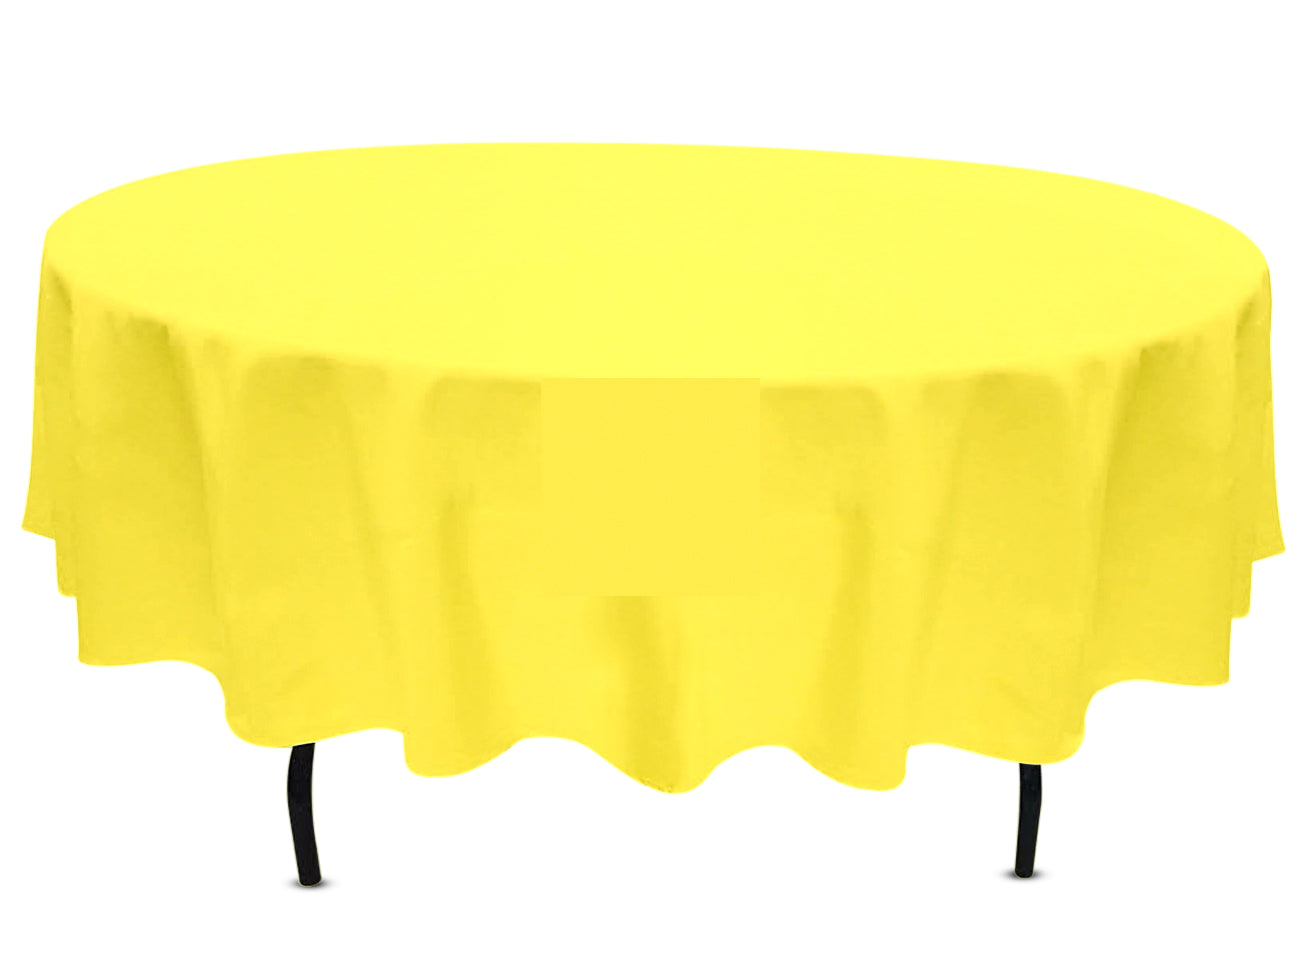 90u0027u0027 Round Tablecloth